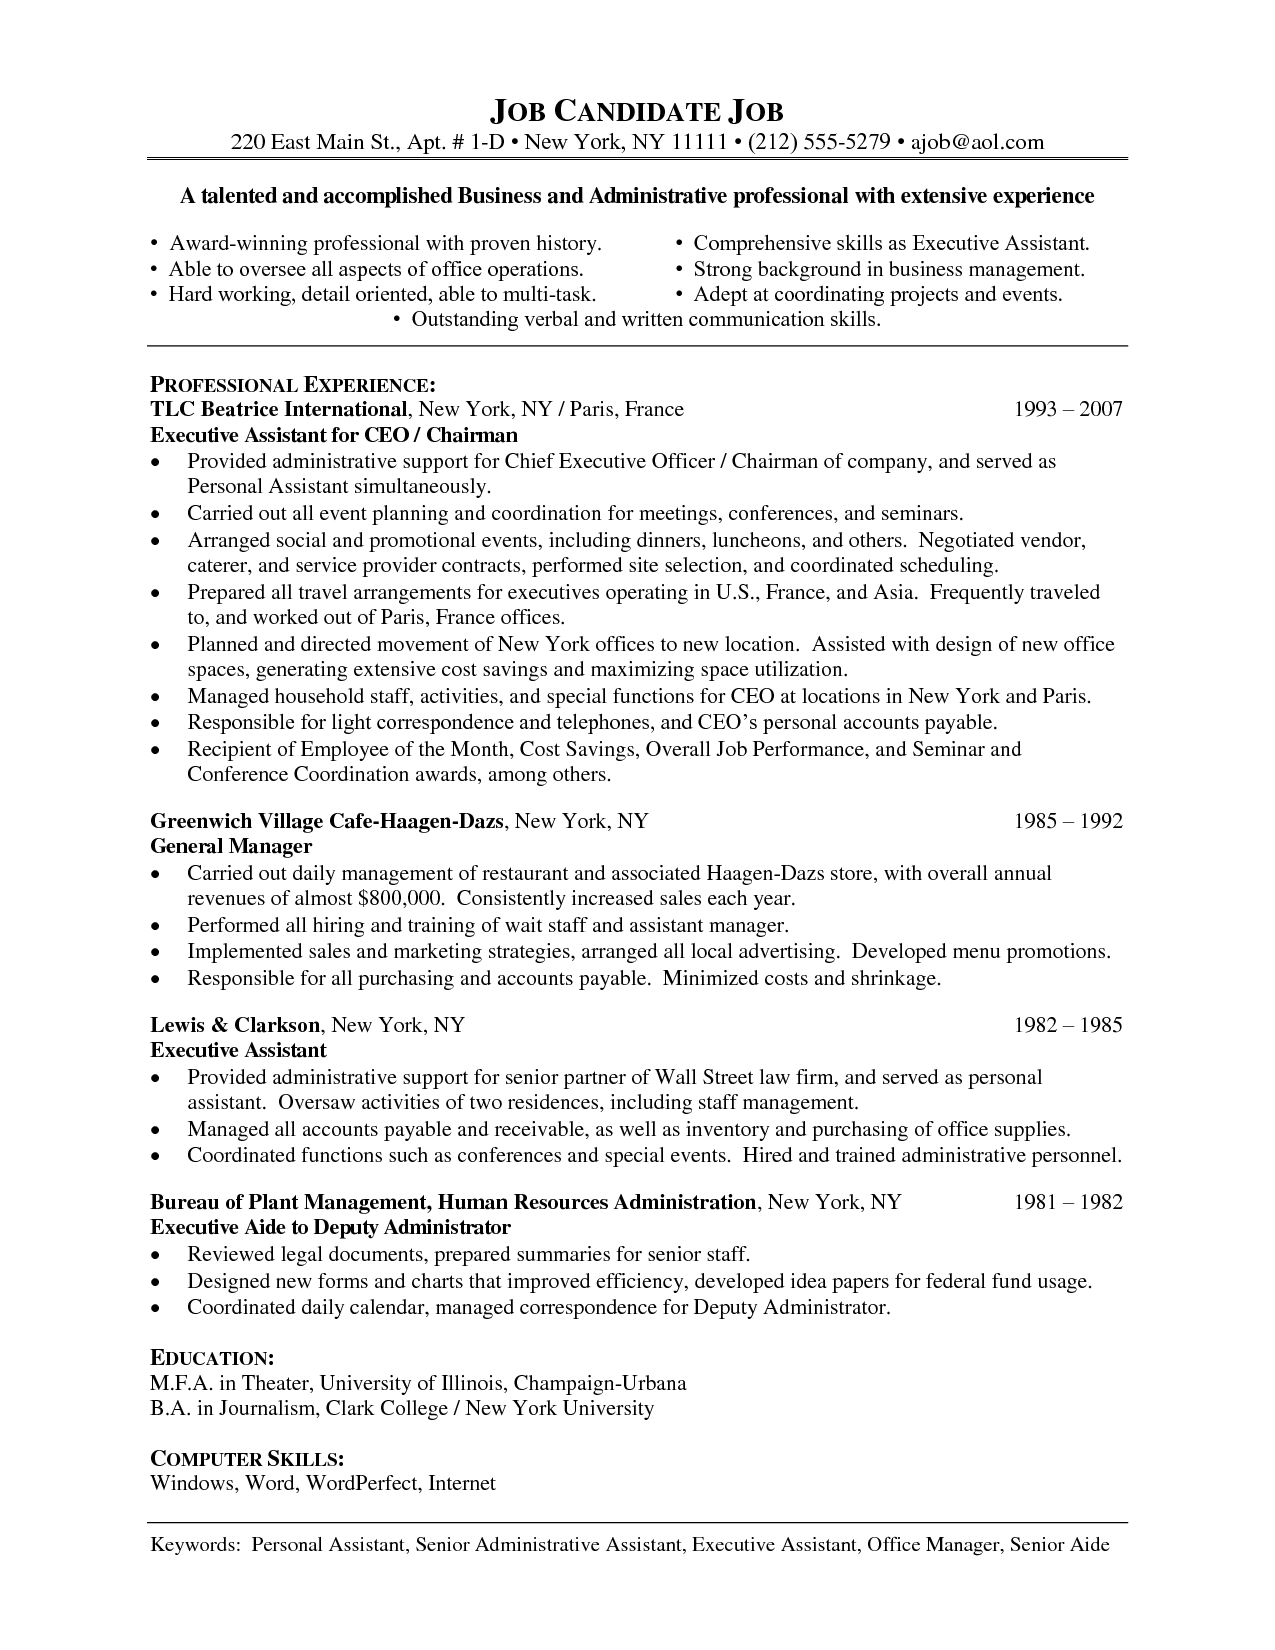 Administrative Assistant Functional Resume Captivating Office Admin Resume Sample System Administrator Linux Professional .